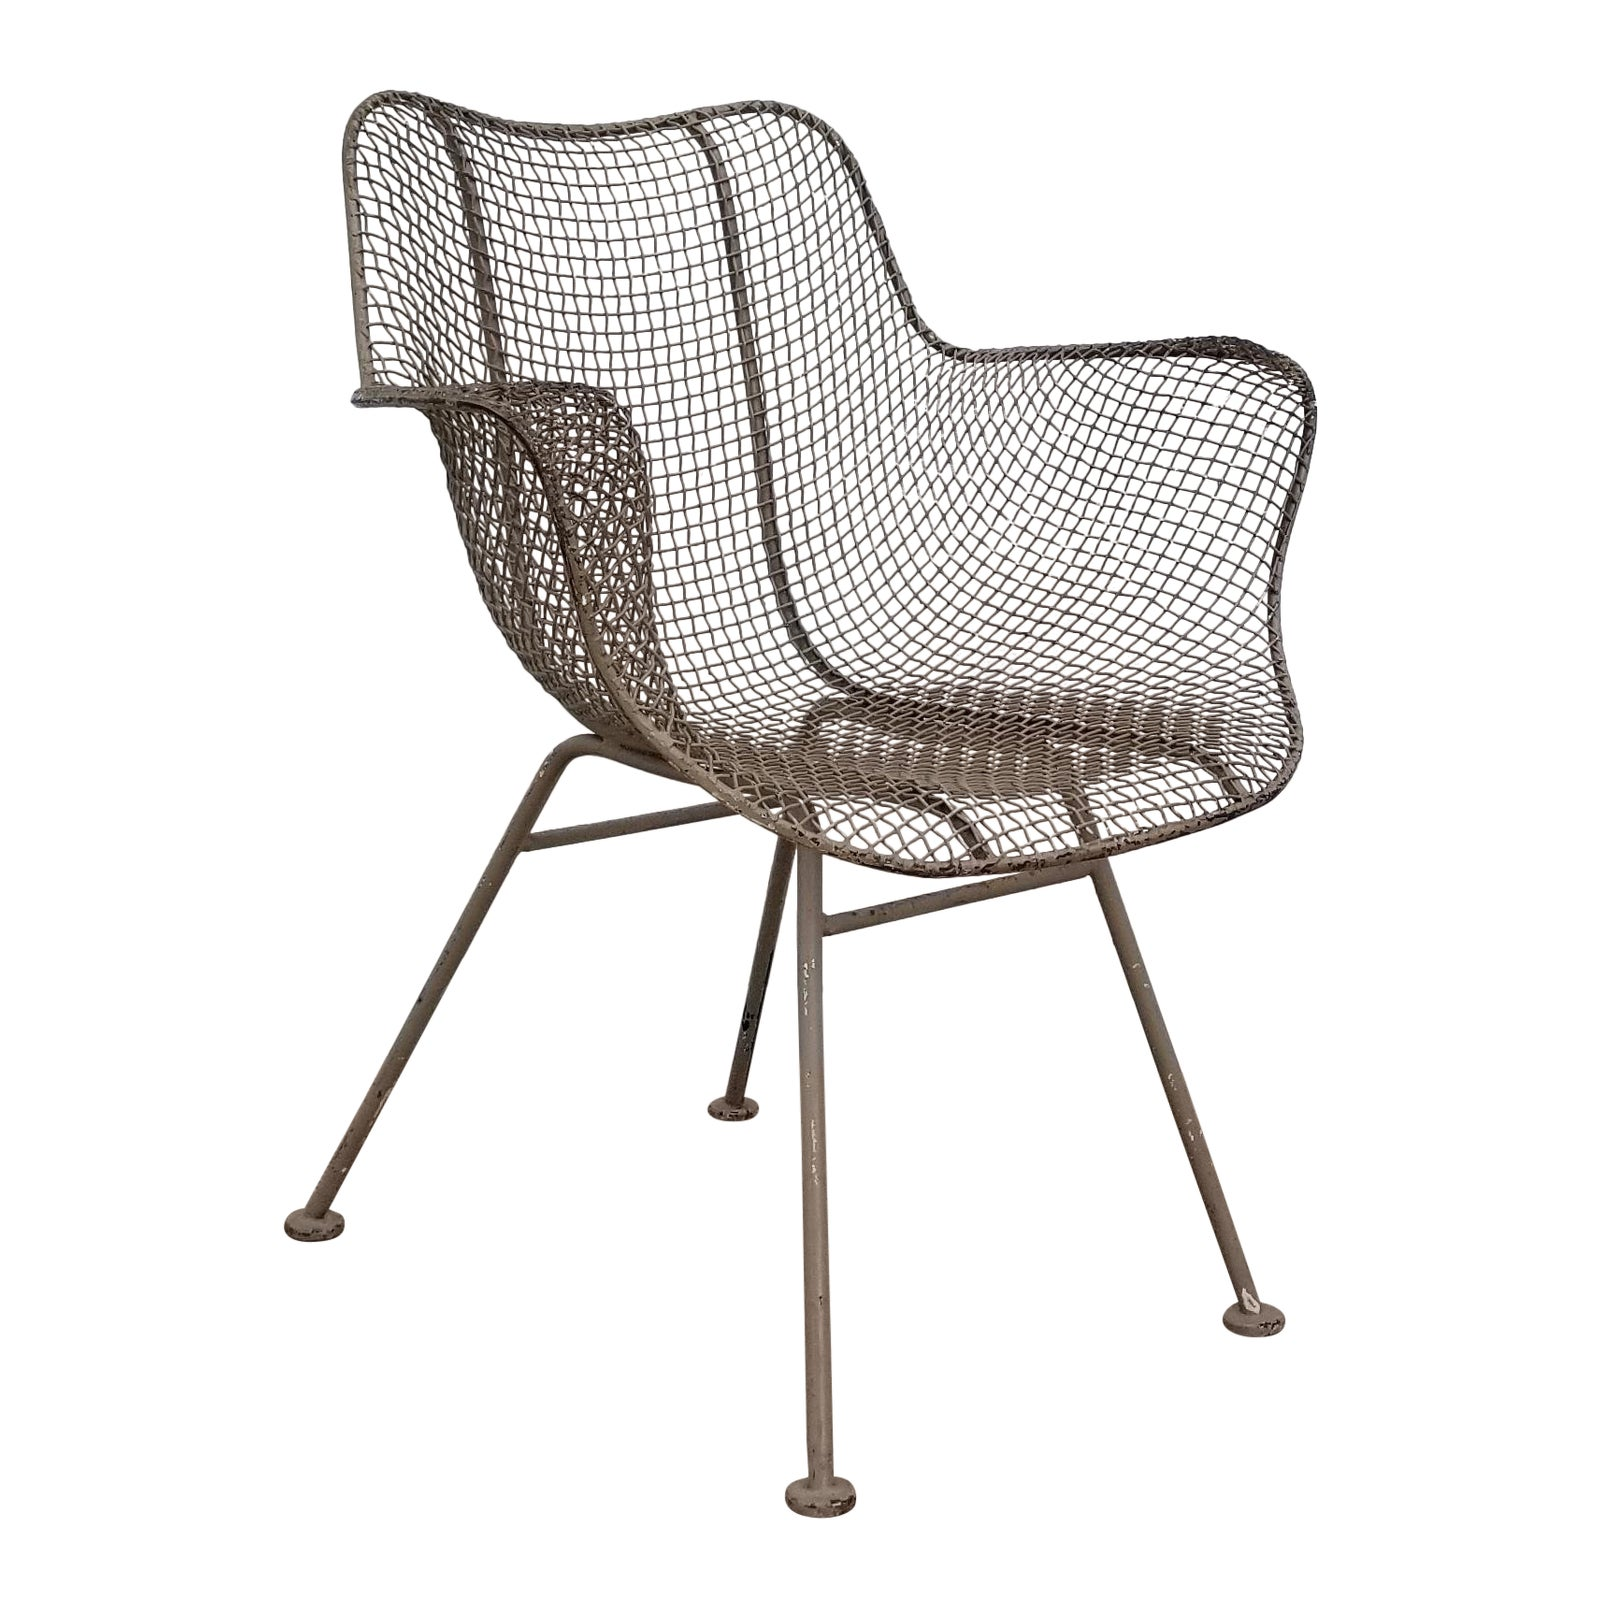 Terrific 1950S Vintage Russell Woodard Metal Accent Chair Andrewgaddart Wooden Chair Designs For Living Room Andrewgaddartcom